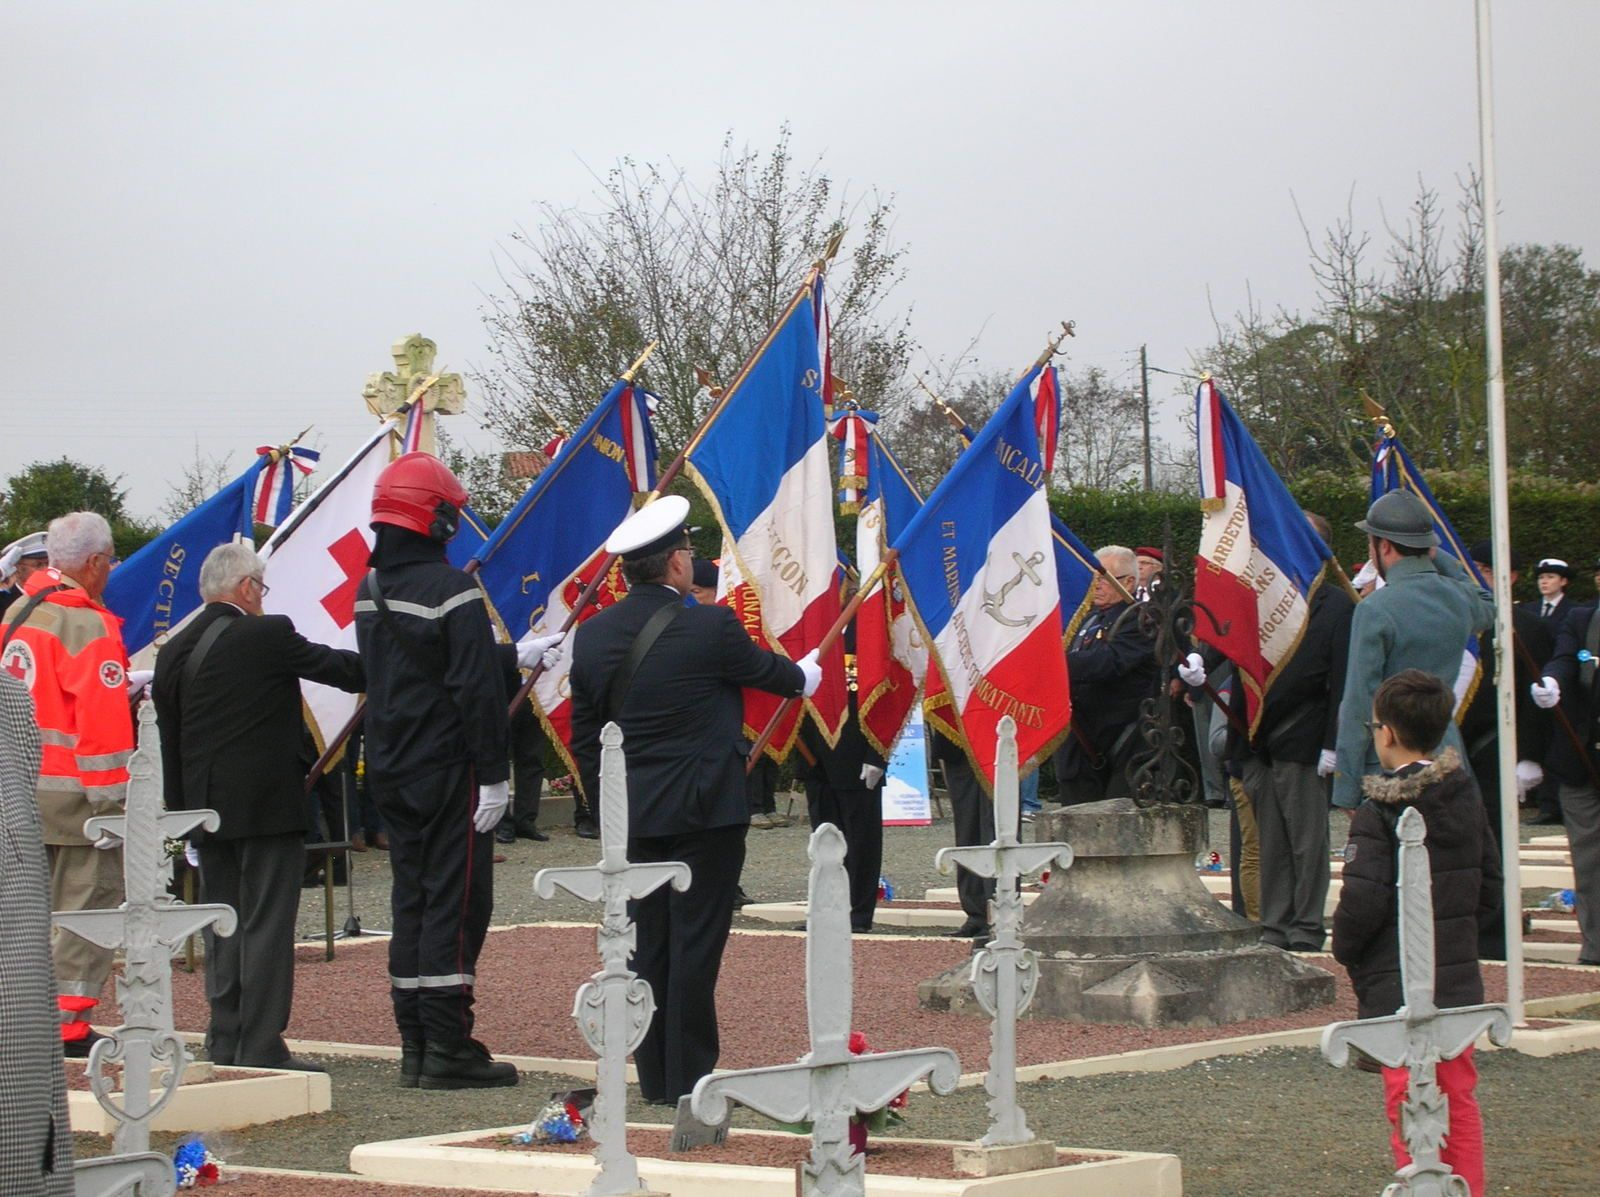 Une délégation de La Préparation Militaire Marine aux cérémonies du 11 novembre 2015 à Luçon.